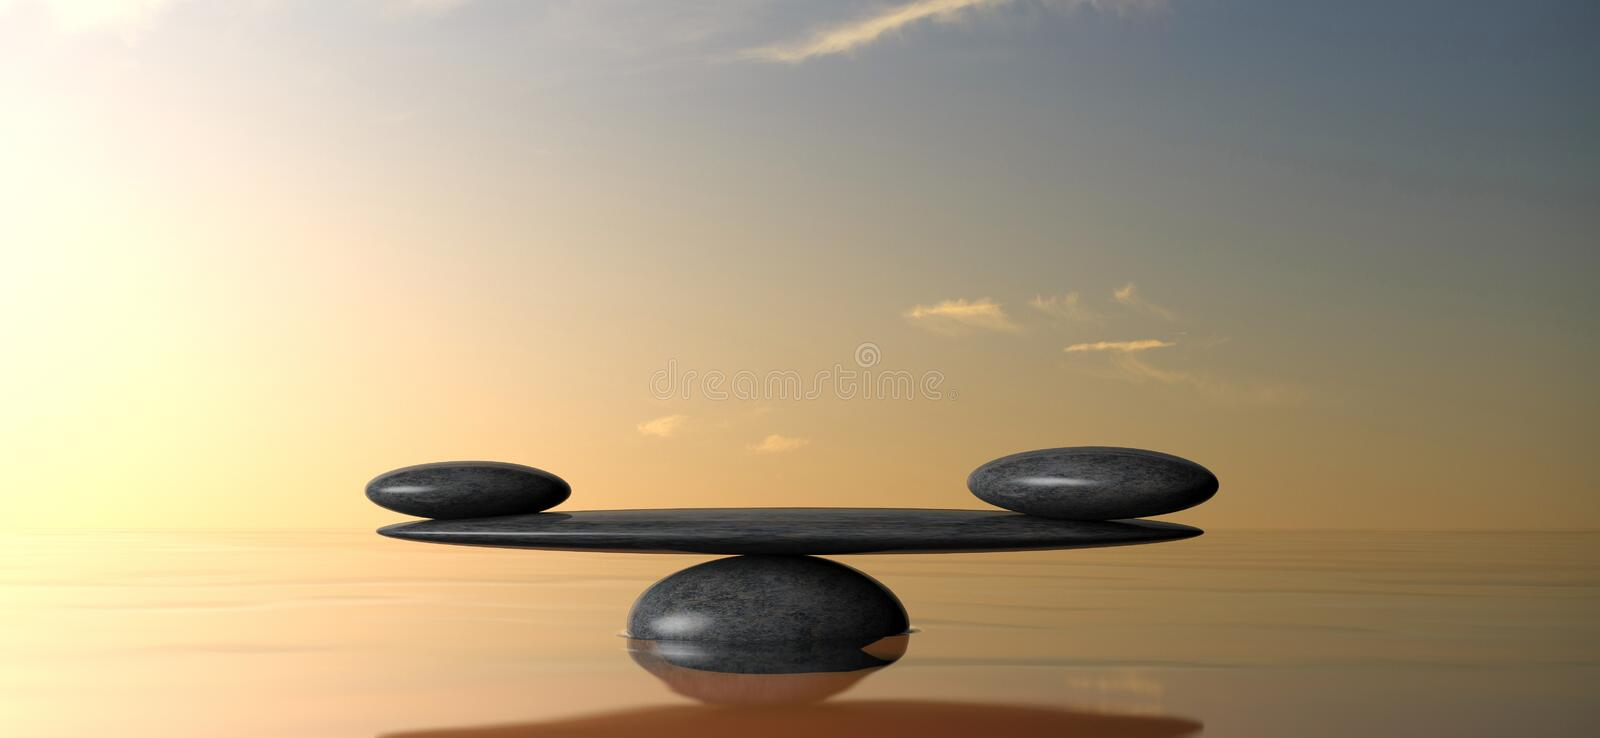 Zen balancing stones on water, sky on sunset background. 3d illustration royalty free illustration